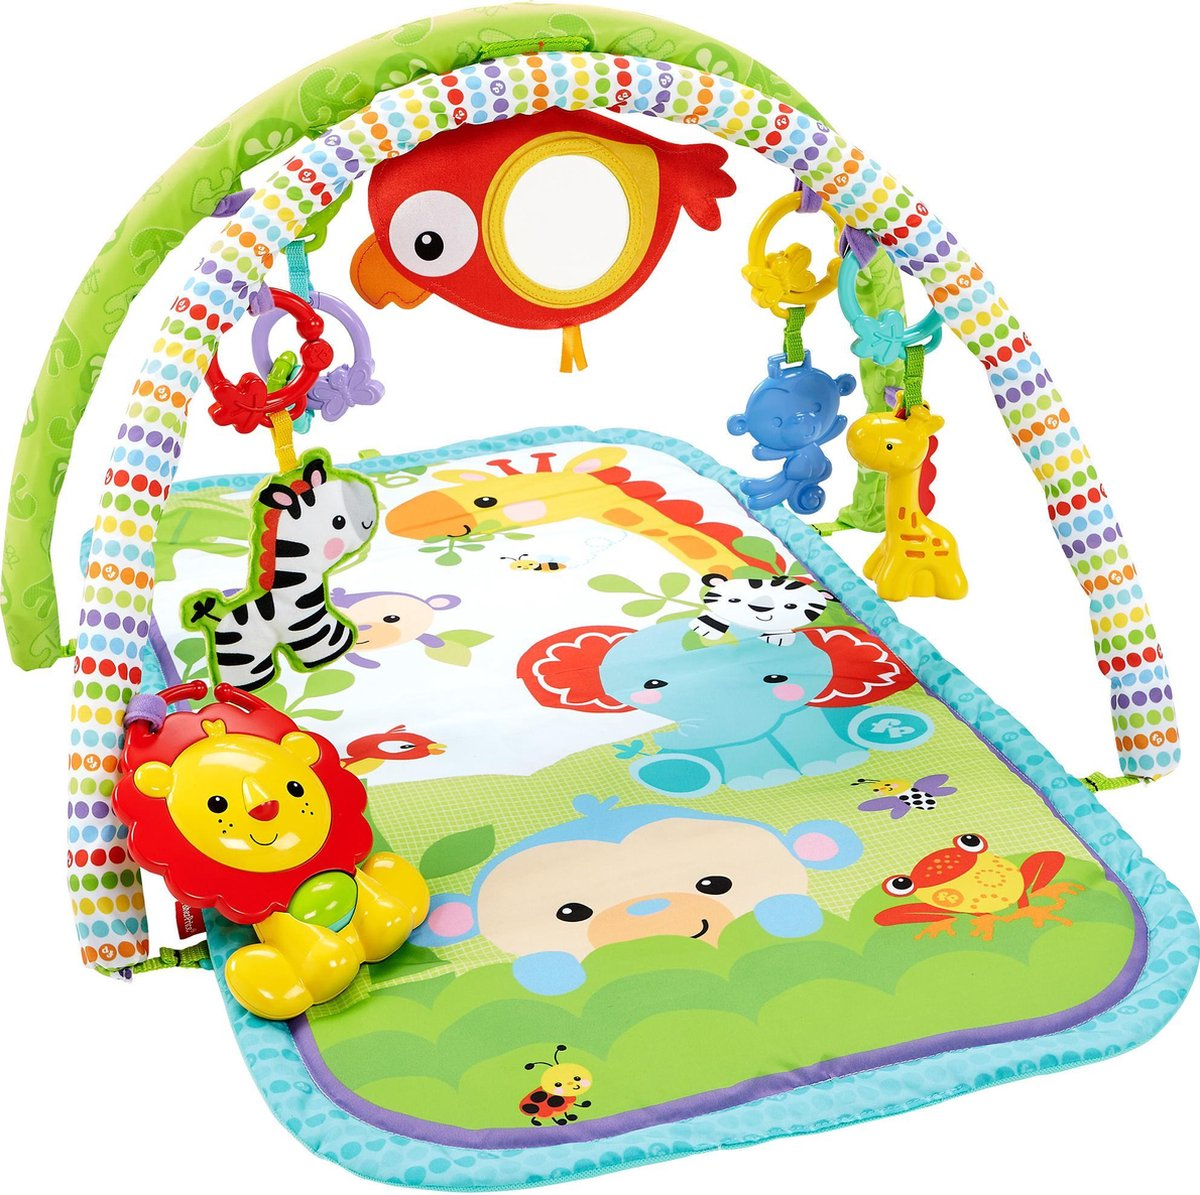 Fisher Price 3-in-1 Muzikale Activiteiten Gym